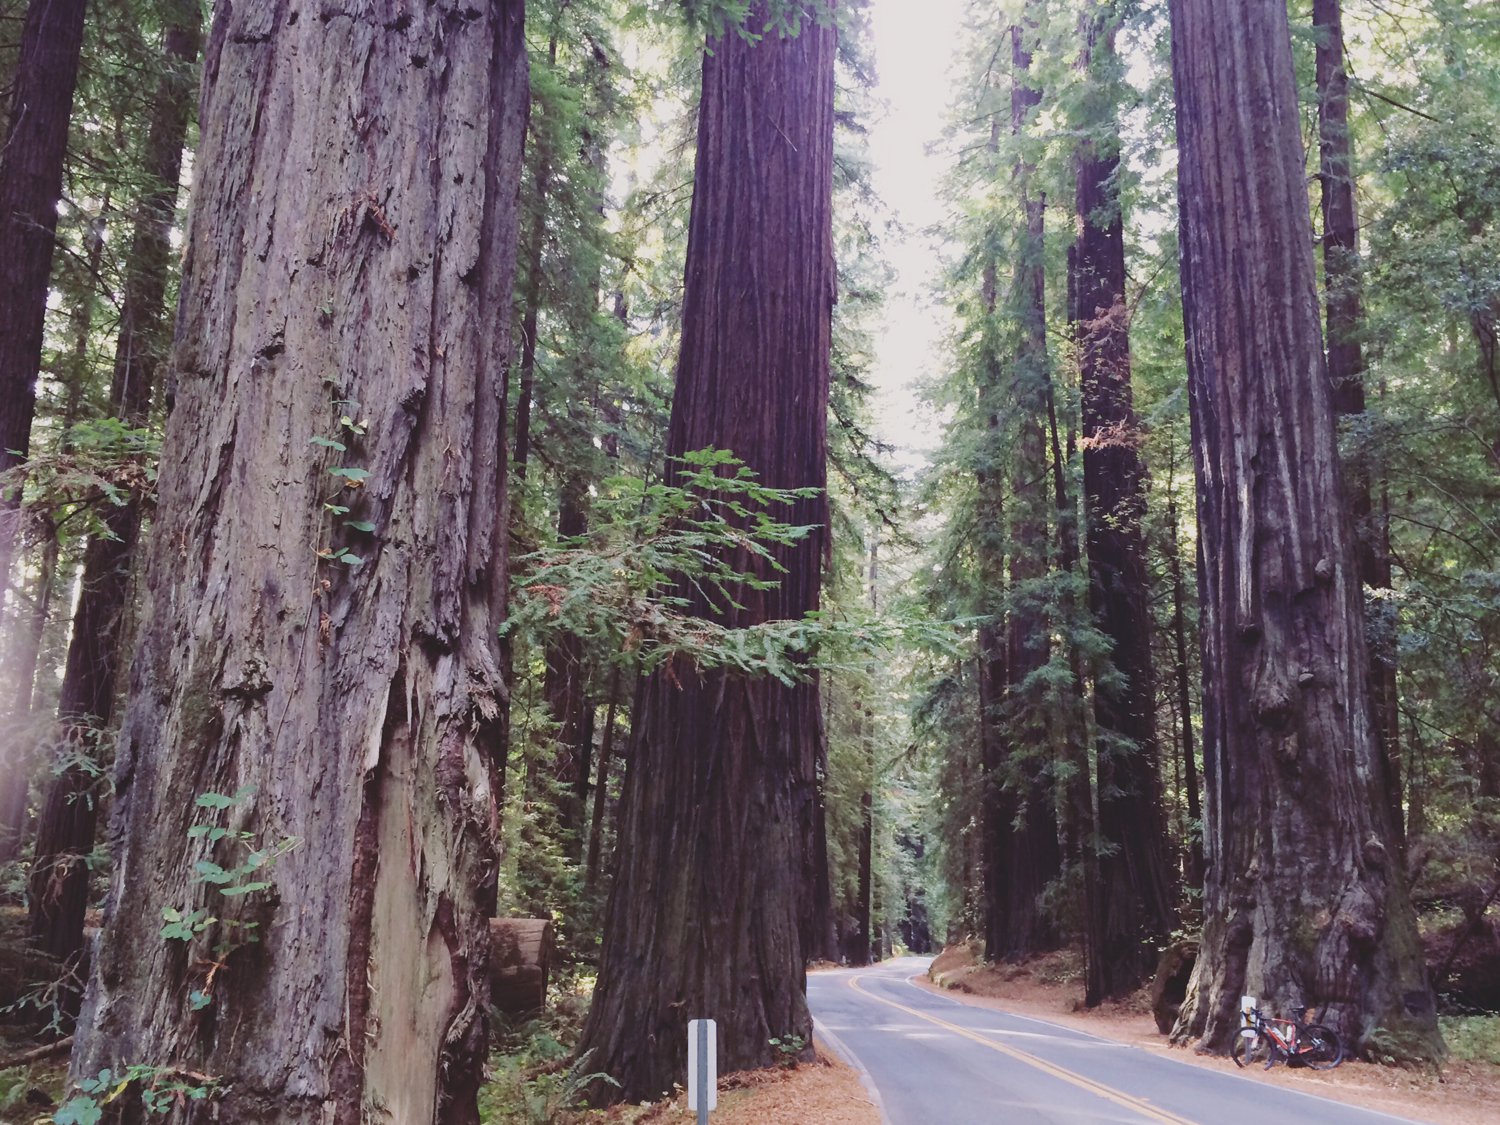 Still on the Avenue of the Giants. I only rode a short section.